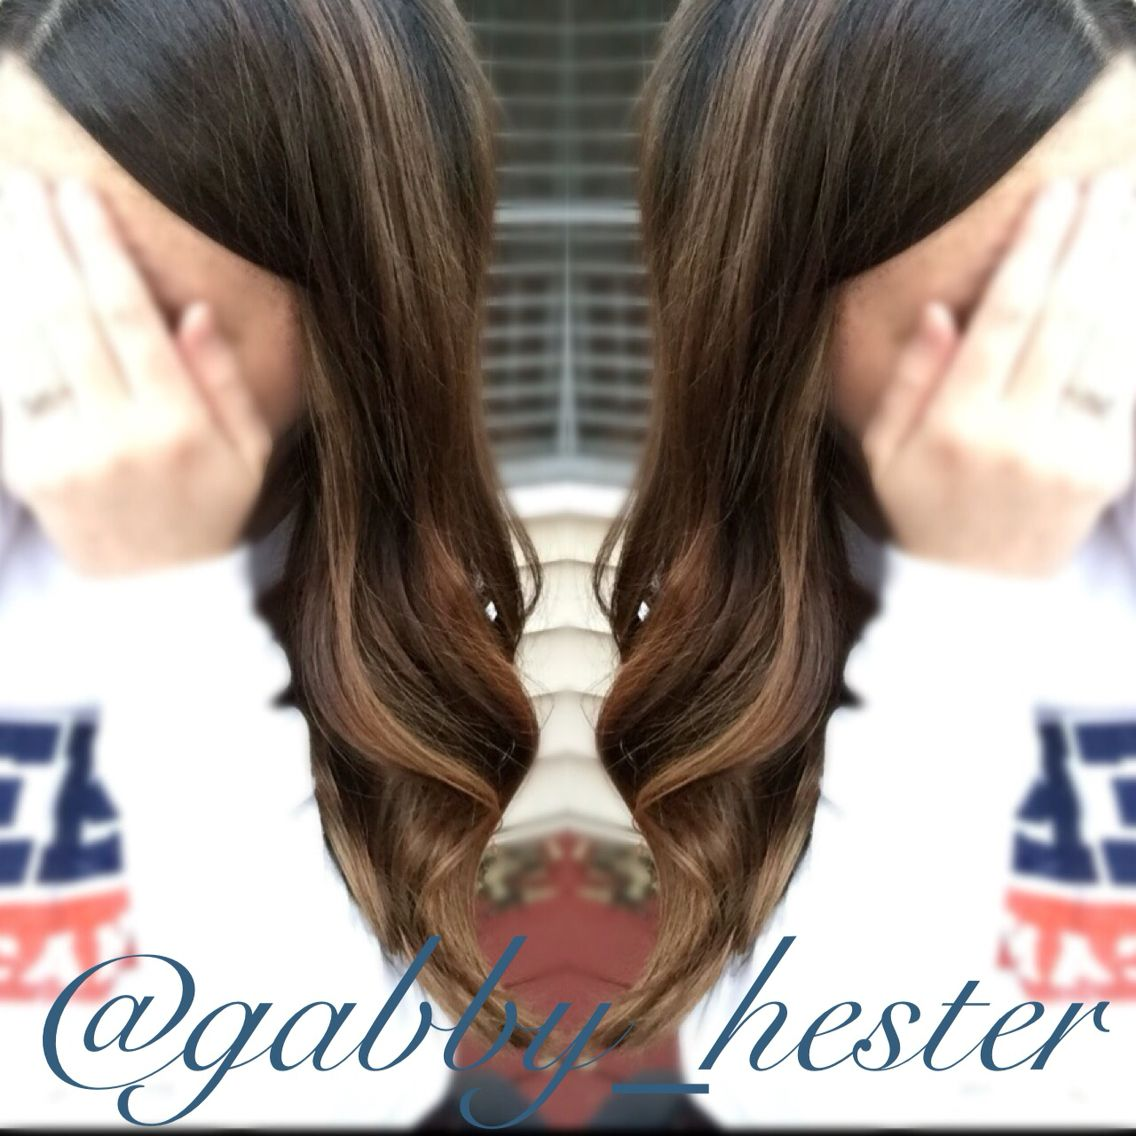 Caramel balayage on medium brown hair work by gabby hester hair